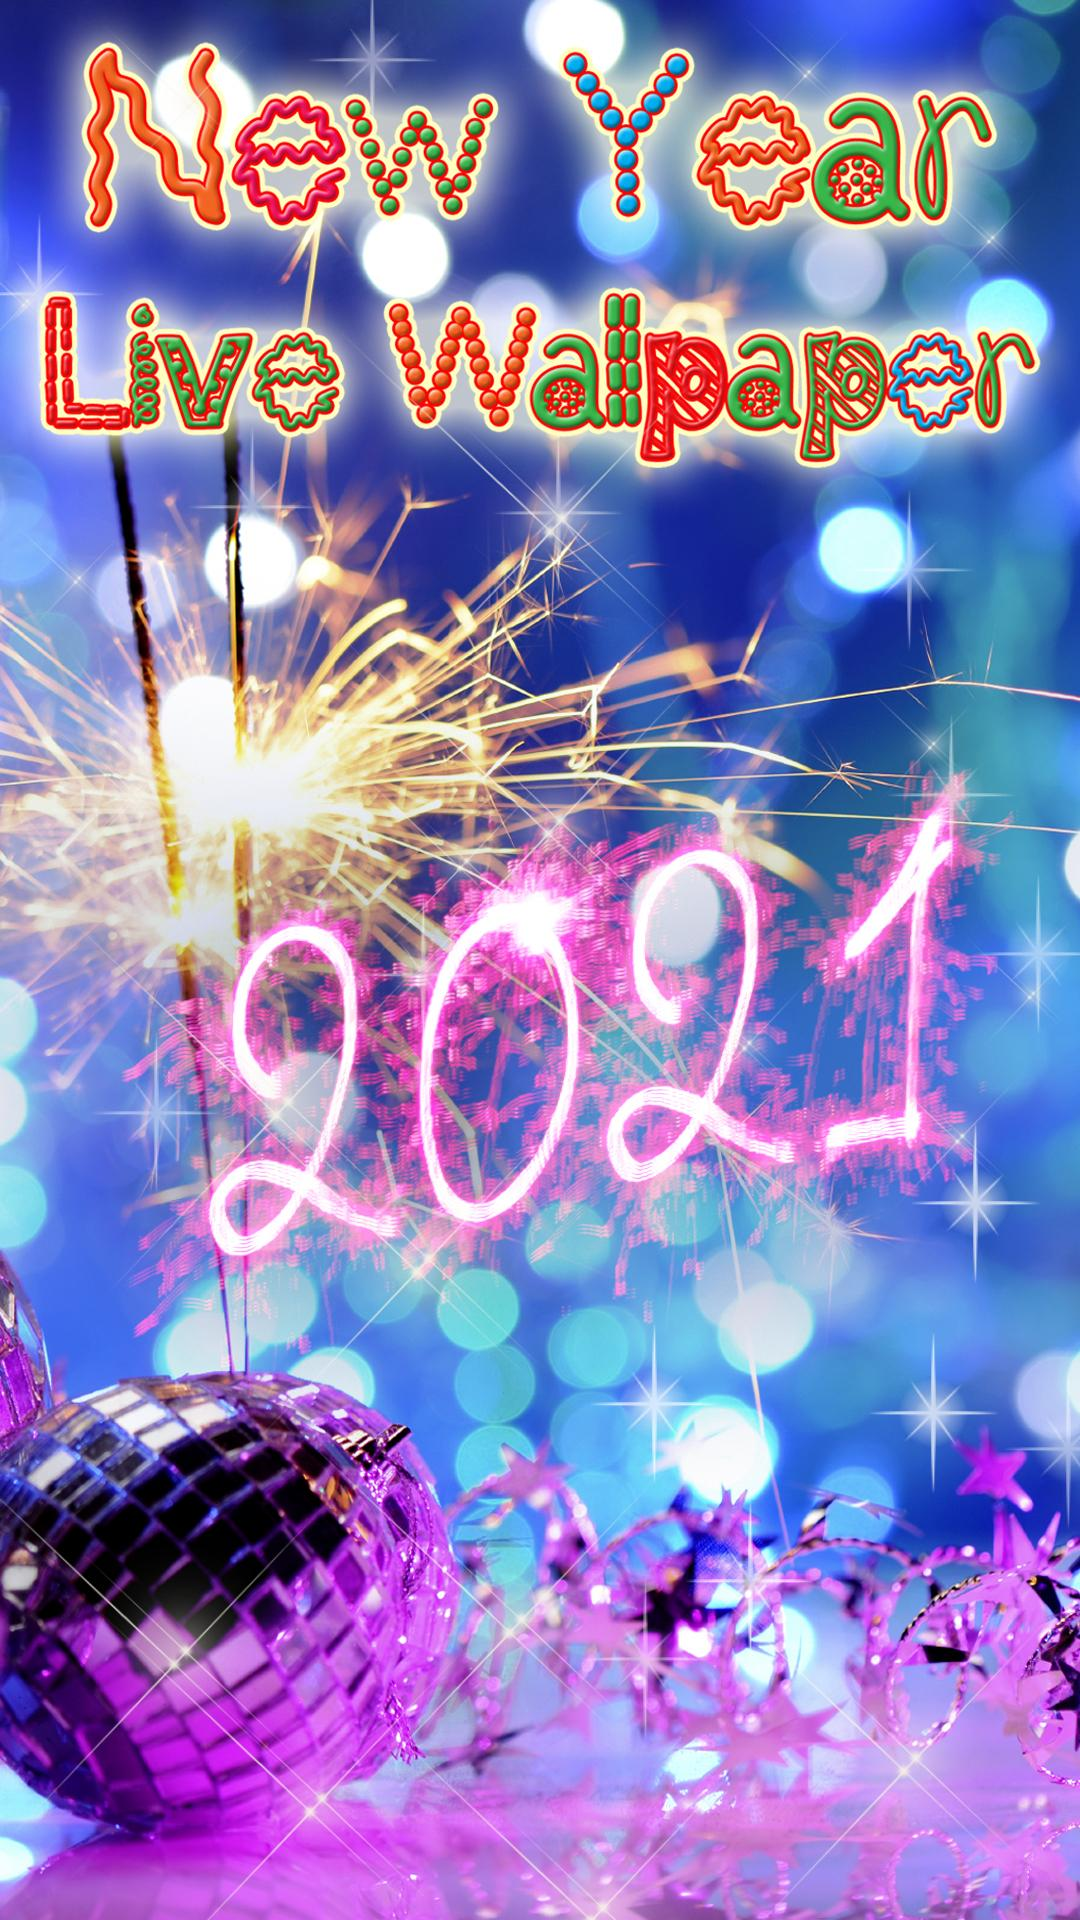 Happy New Year Wallpaper 2021 Holiday Background For Android Apk Download